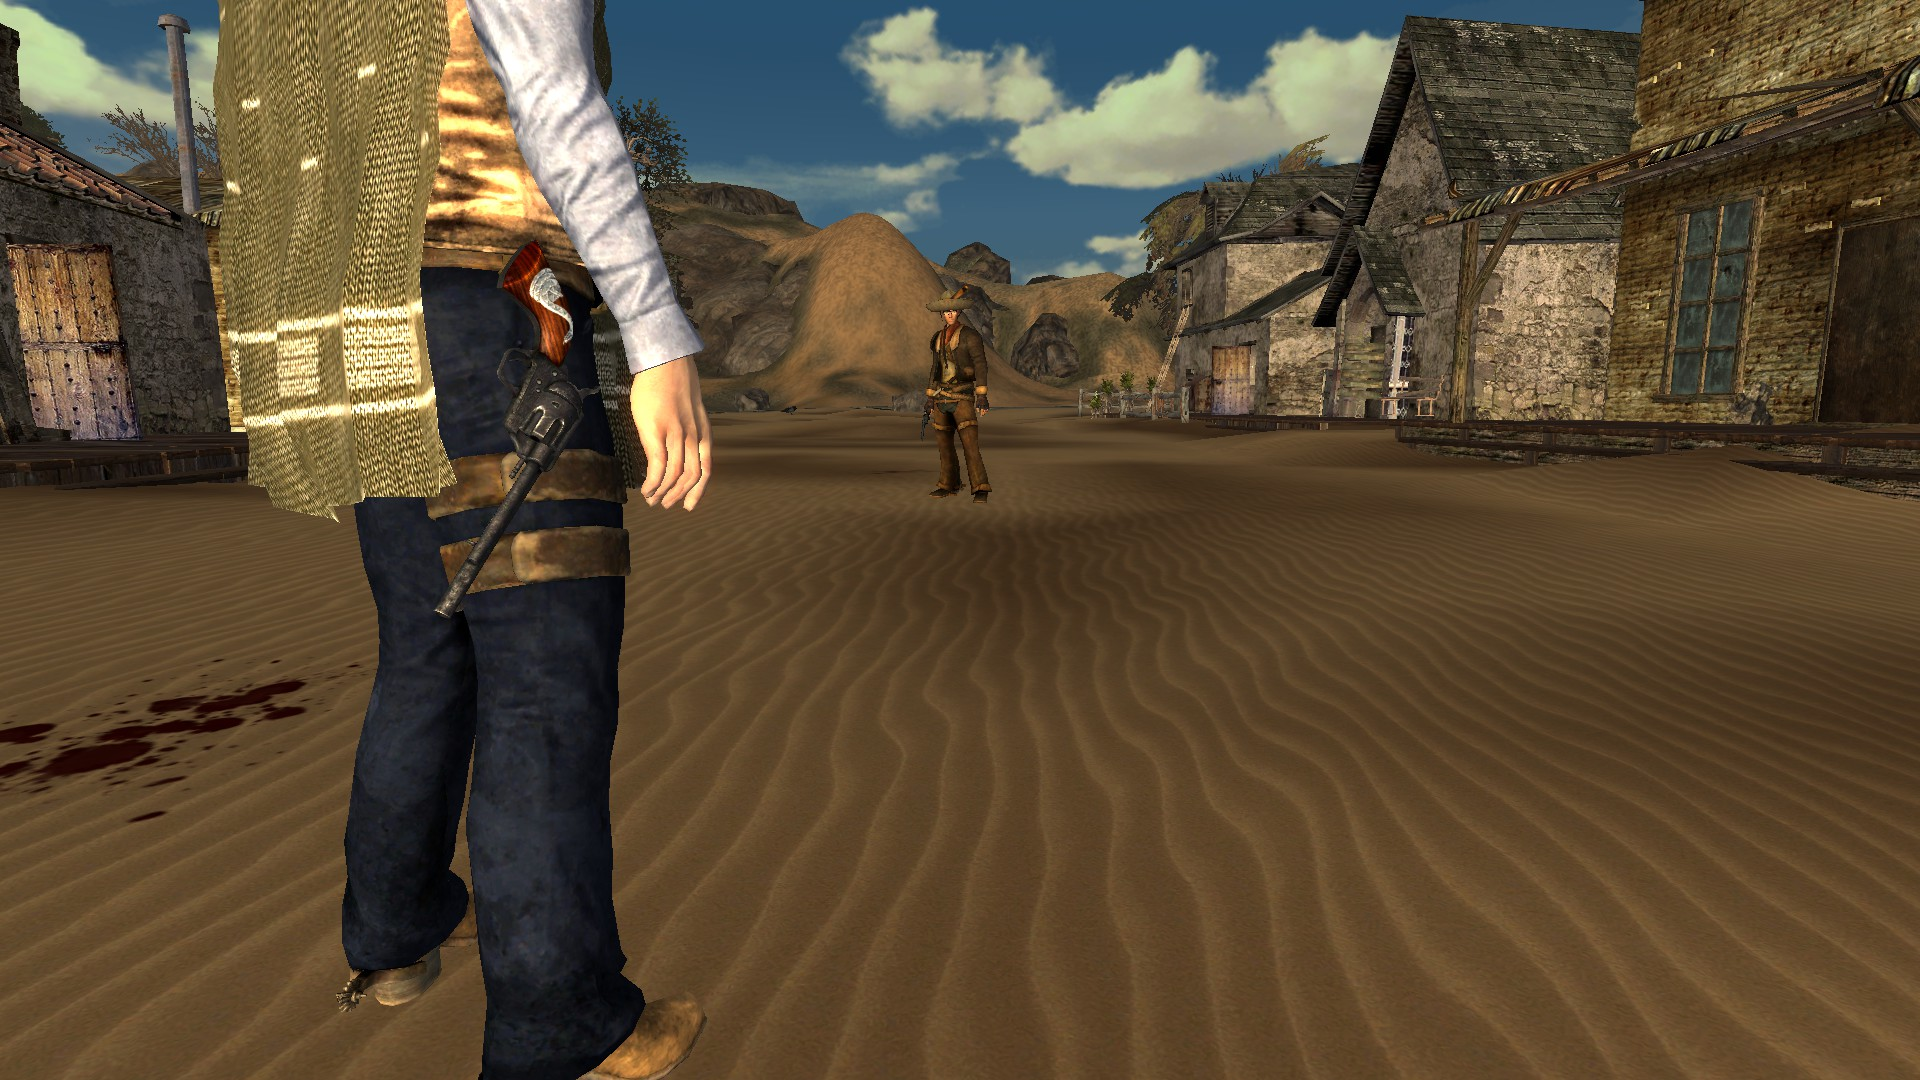 The Wild West Screenshot Contest VszKr4l4_o